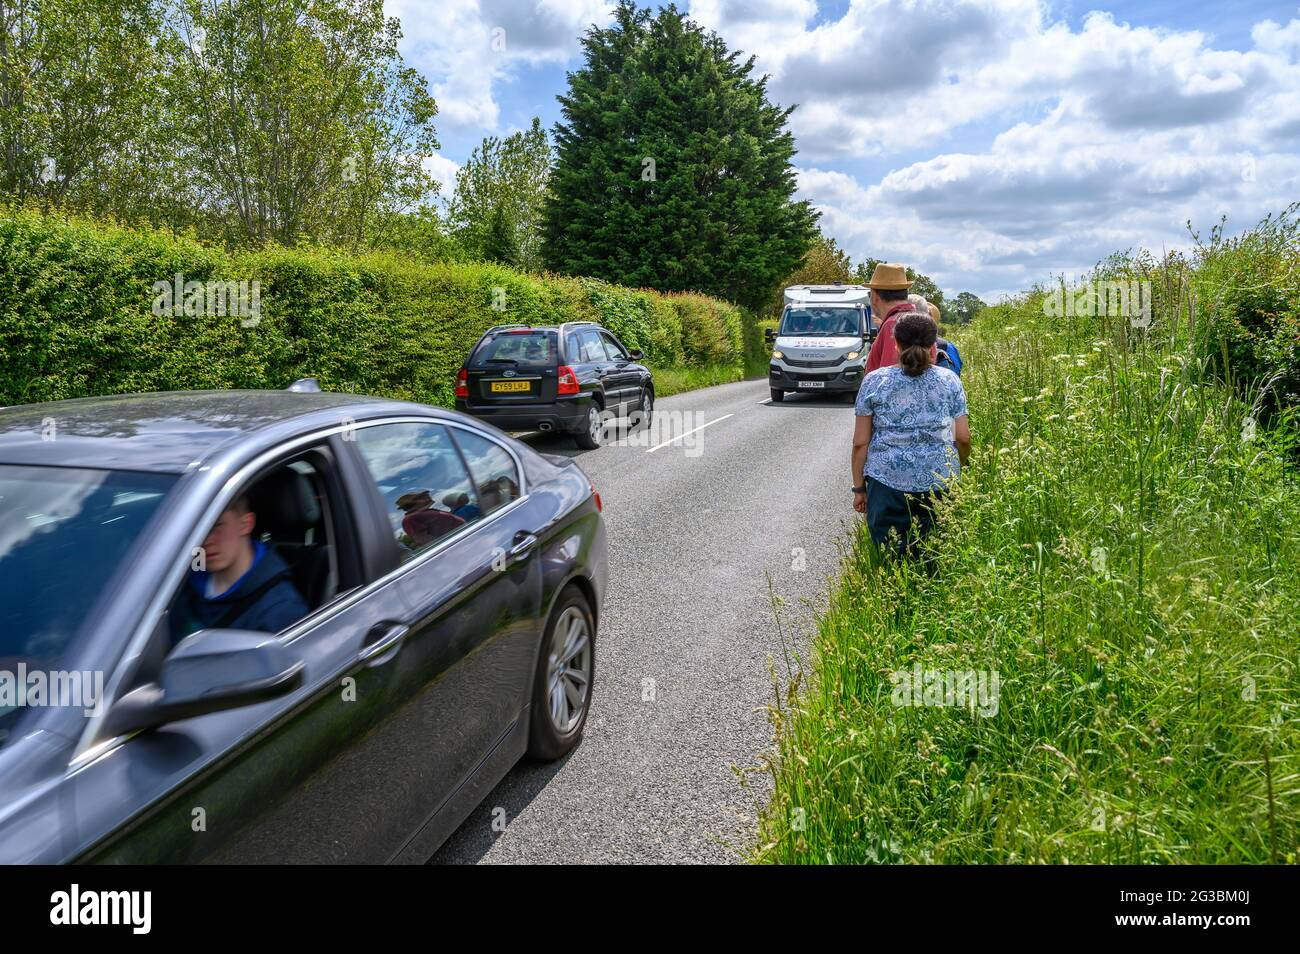 A group of ramblers standing on the grass verge while traffic drives past along South Road between Plumpton Green and South Chailey, East Sussex, Engl Stock Photo